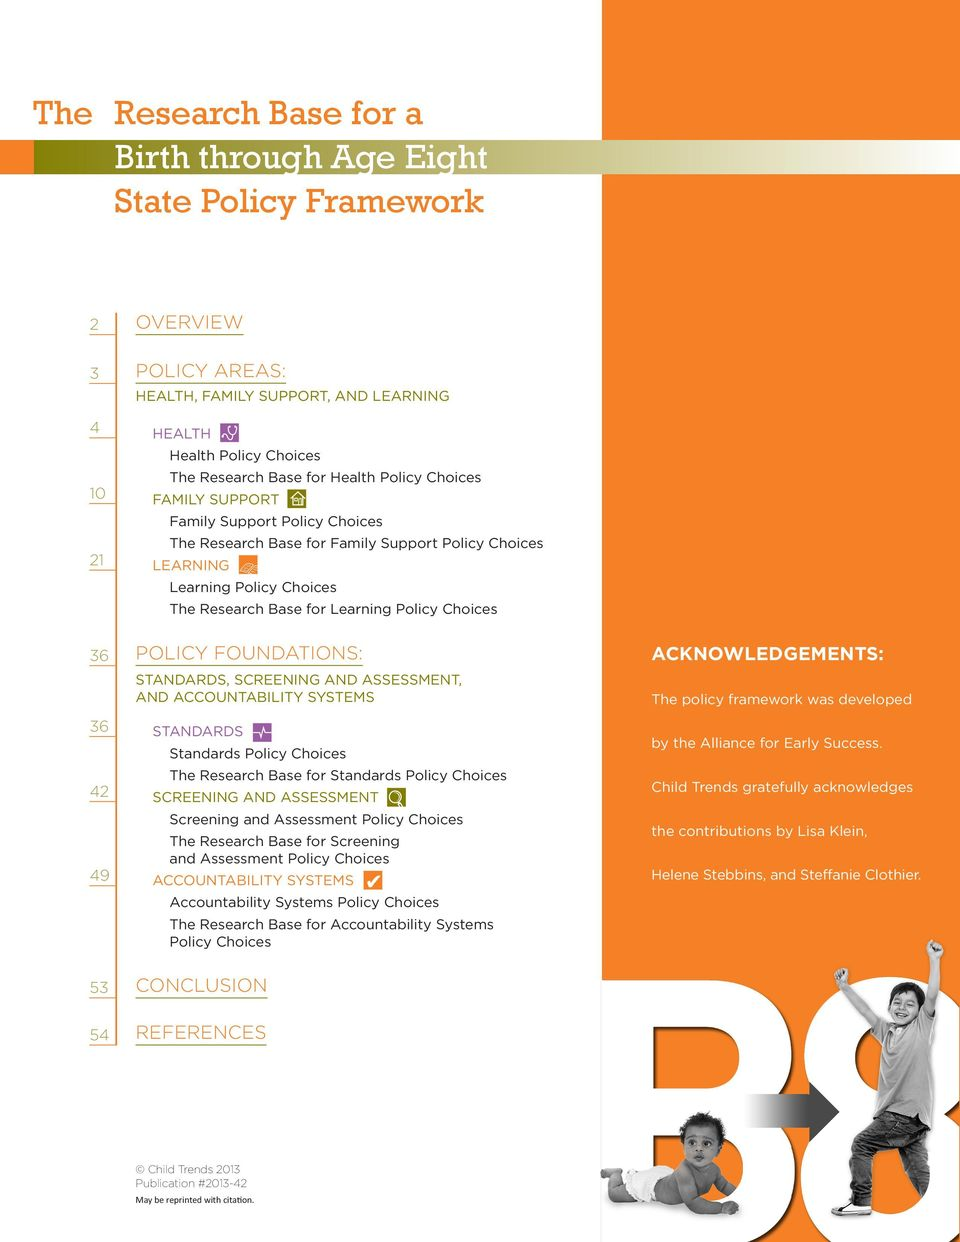 36 36 42 49 53 54 POLICY FOUNDATIONS: STANDARDS, SCREENING AND ASSESSMENT, AND ACCOUNTABILITY SYSTEMS STANDARDS Standards Policy Choices The Research Base for Standards Policy Choices SCREENING AND